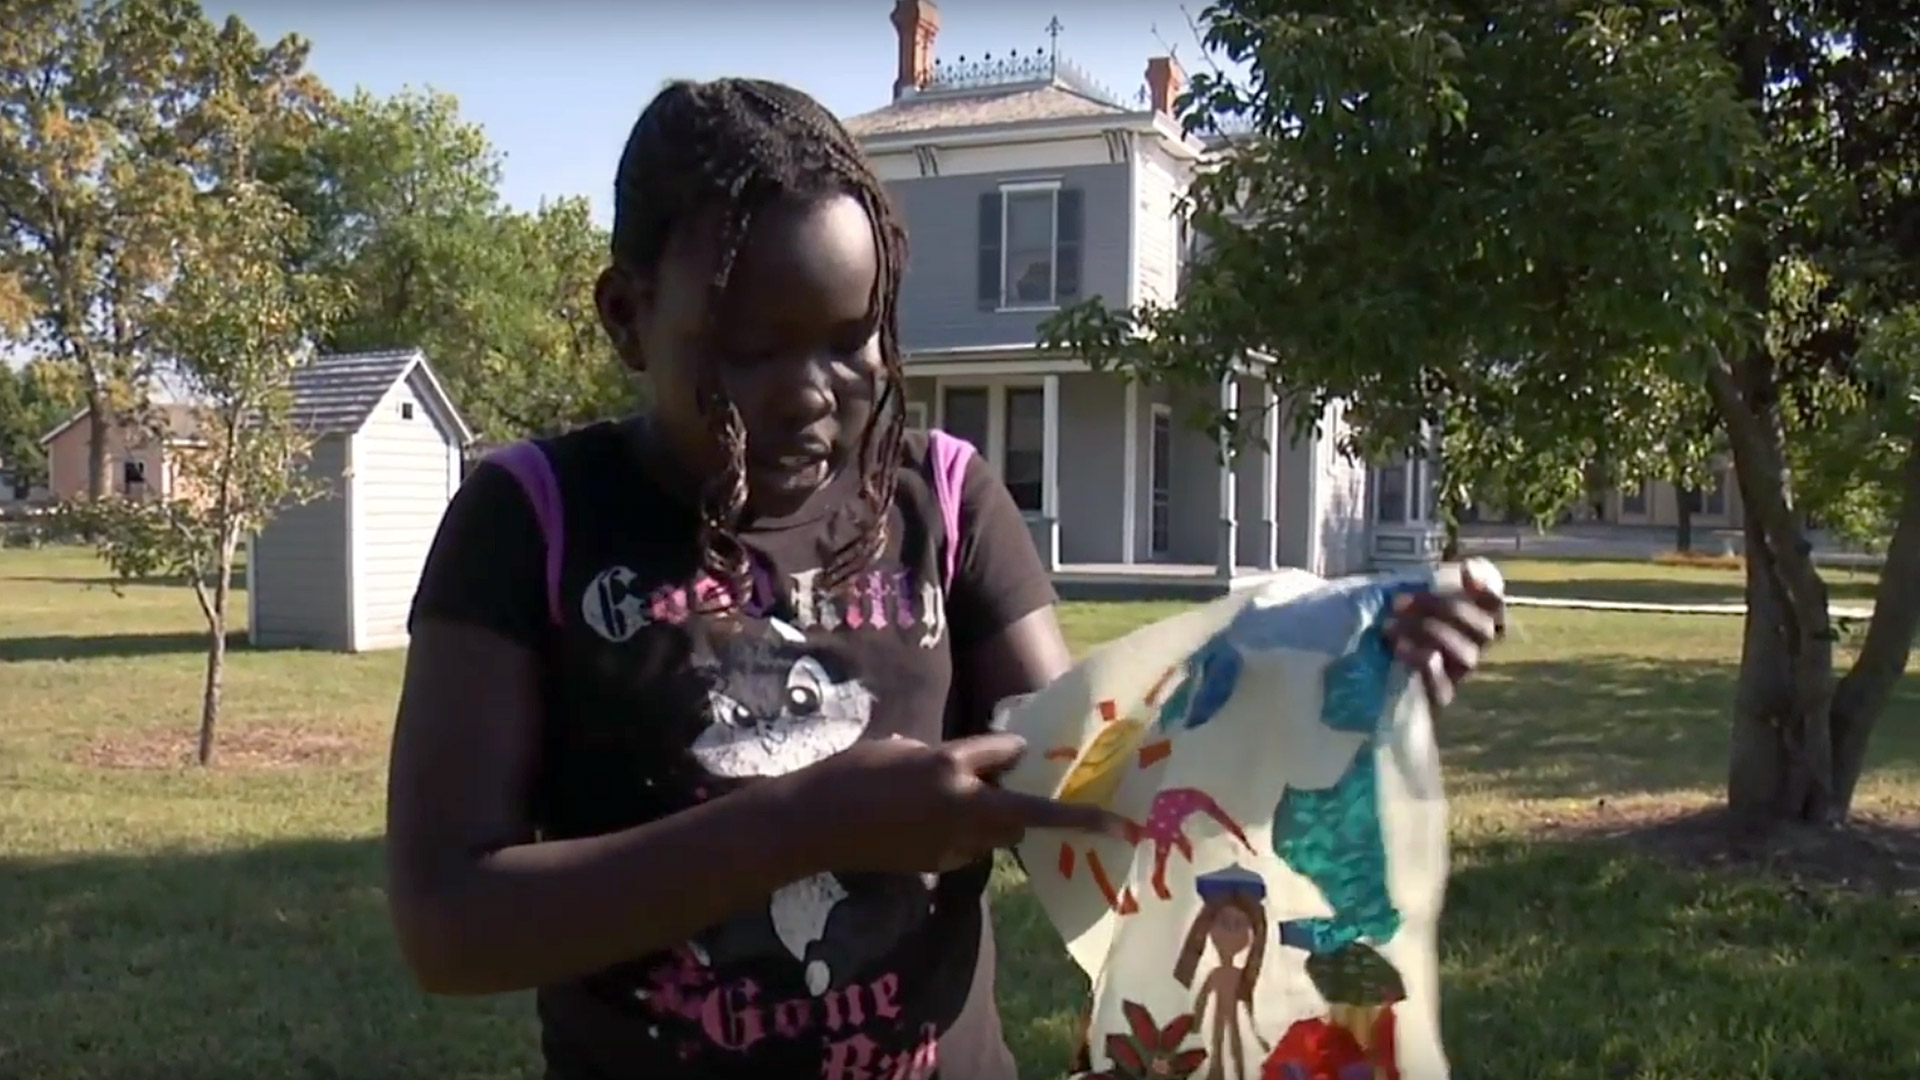 Nyabiel shows off her Memories block at the Stuhr Museum. From the documentary The Quilted Conscience